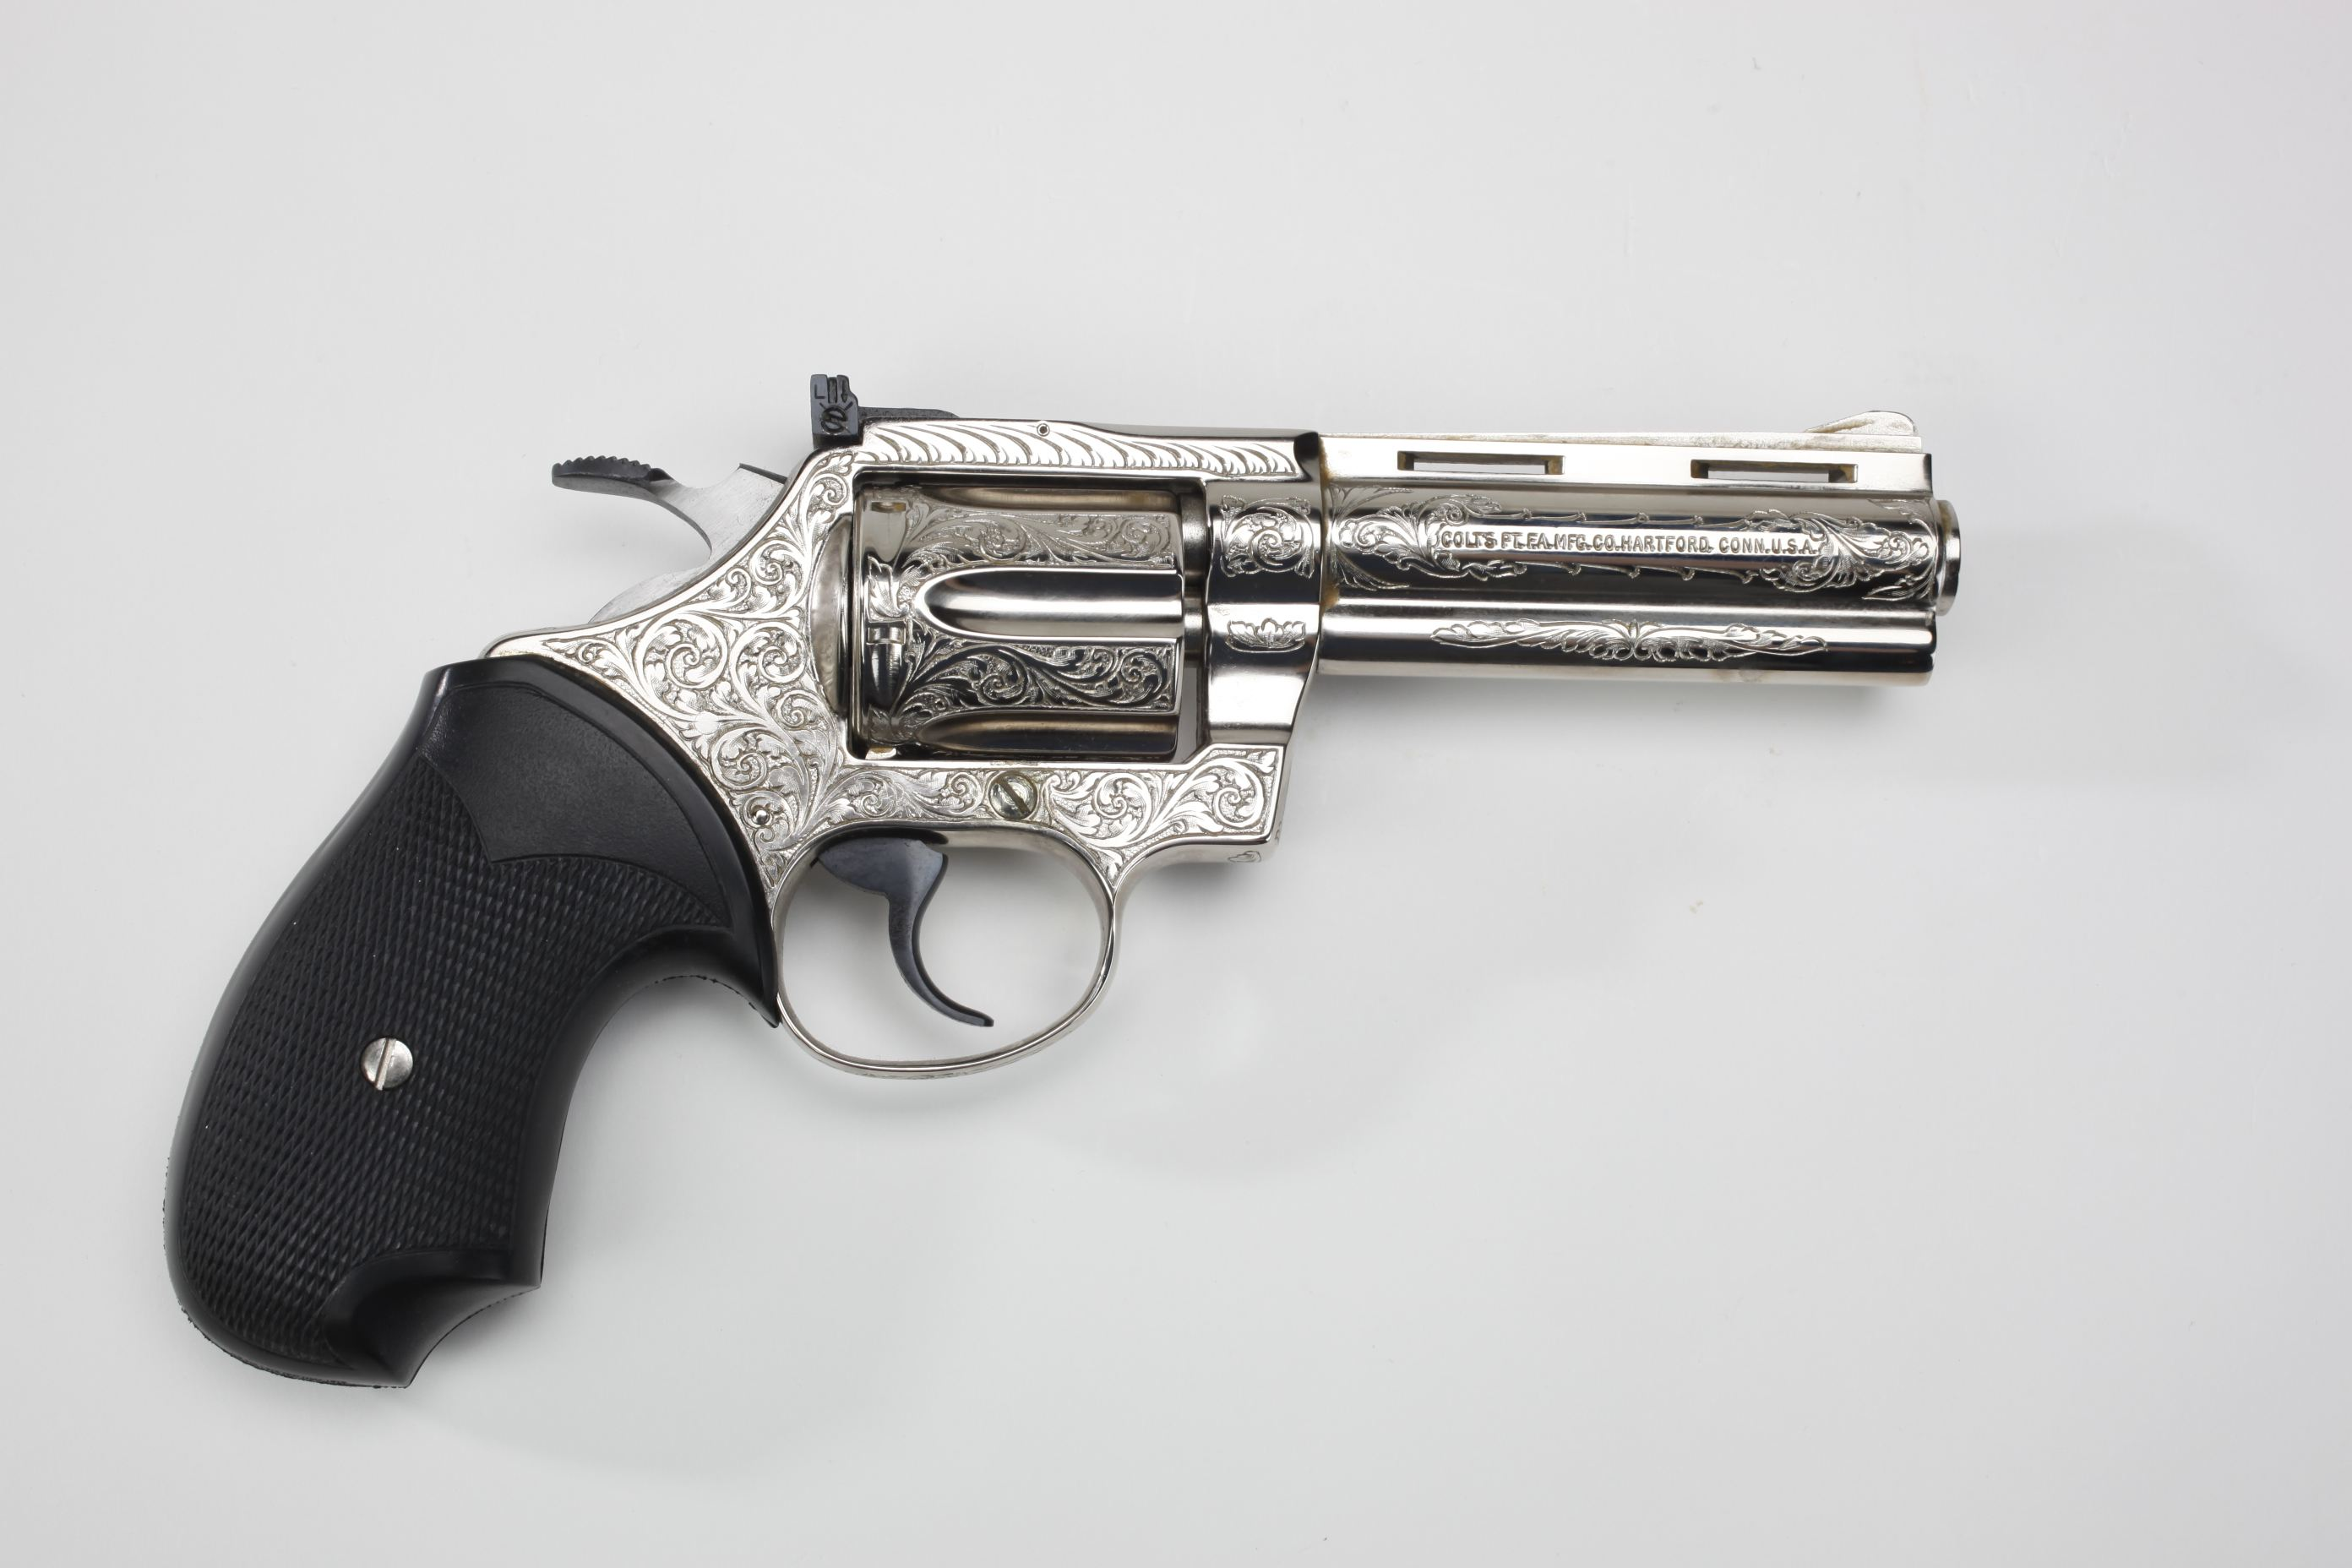 Colt Diamondback Double-Action Revolver